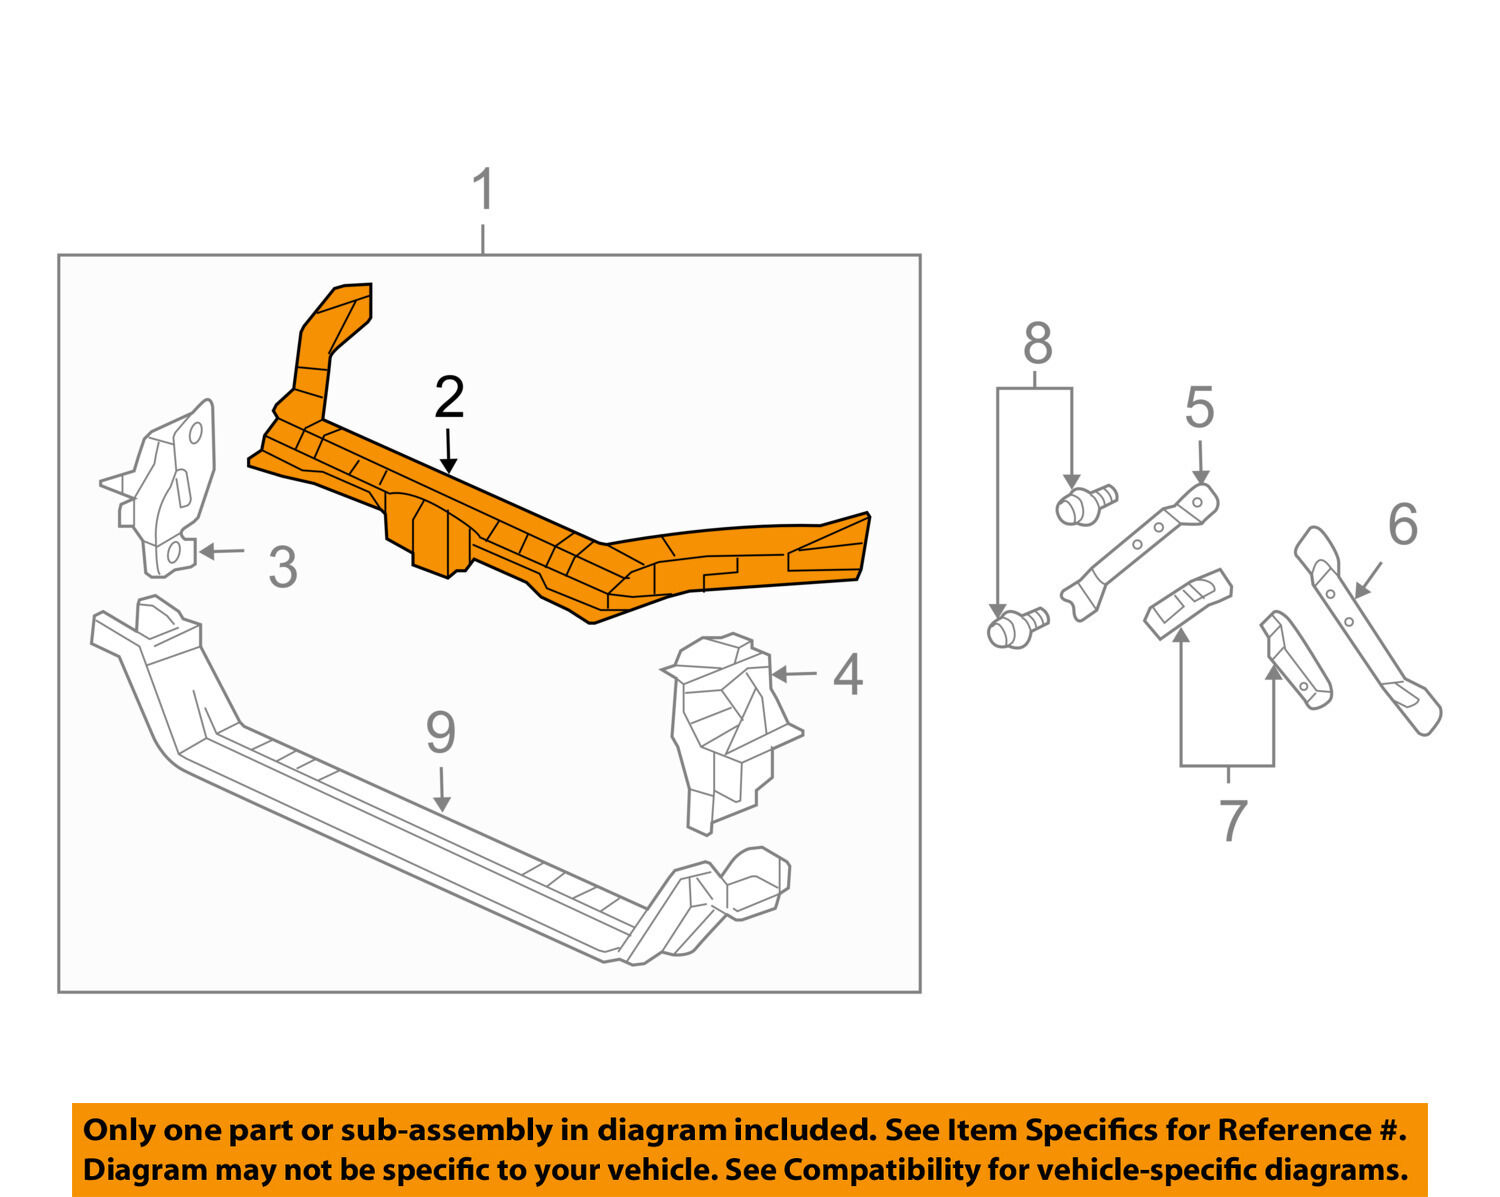 hight resolution of acura honda oem 04 08 tl radiator core support upper tie bar 04602sepa10zz for sale